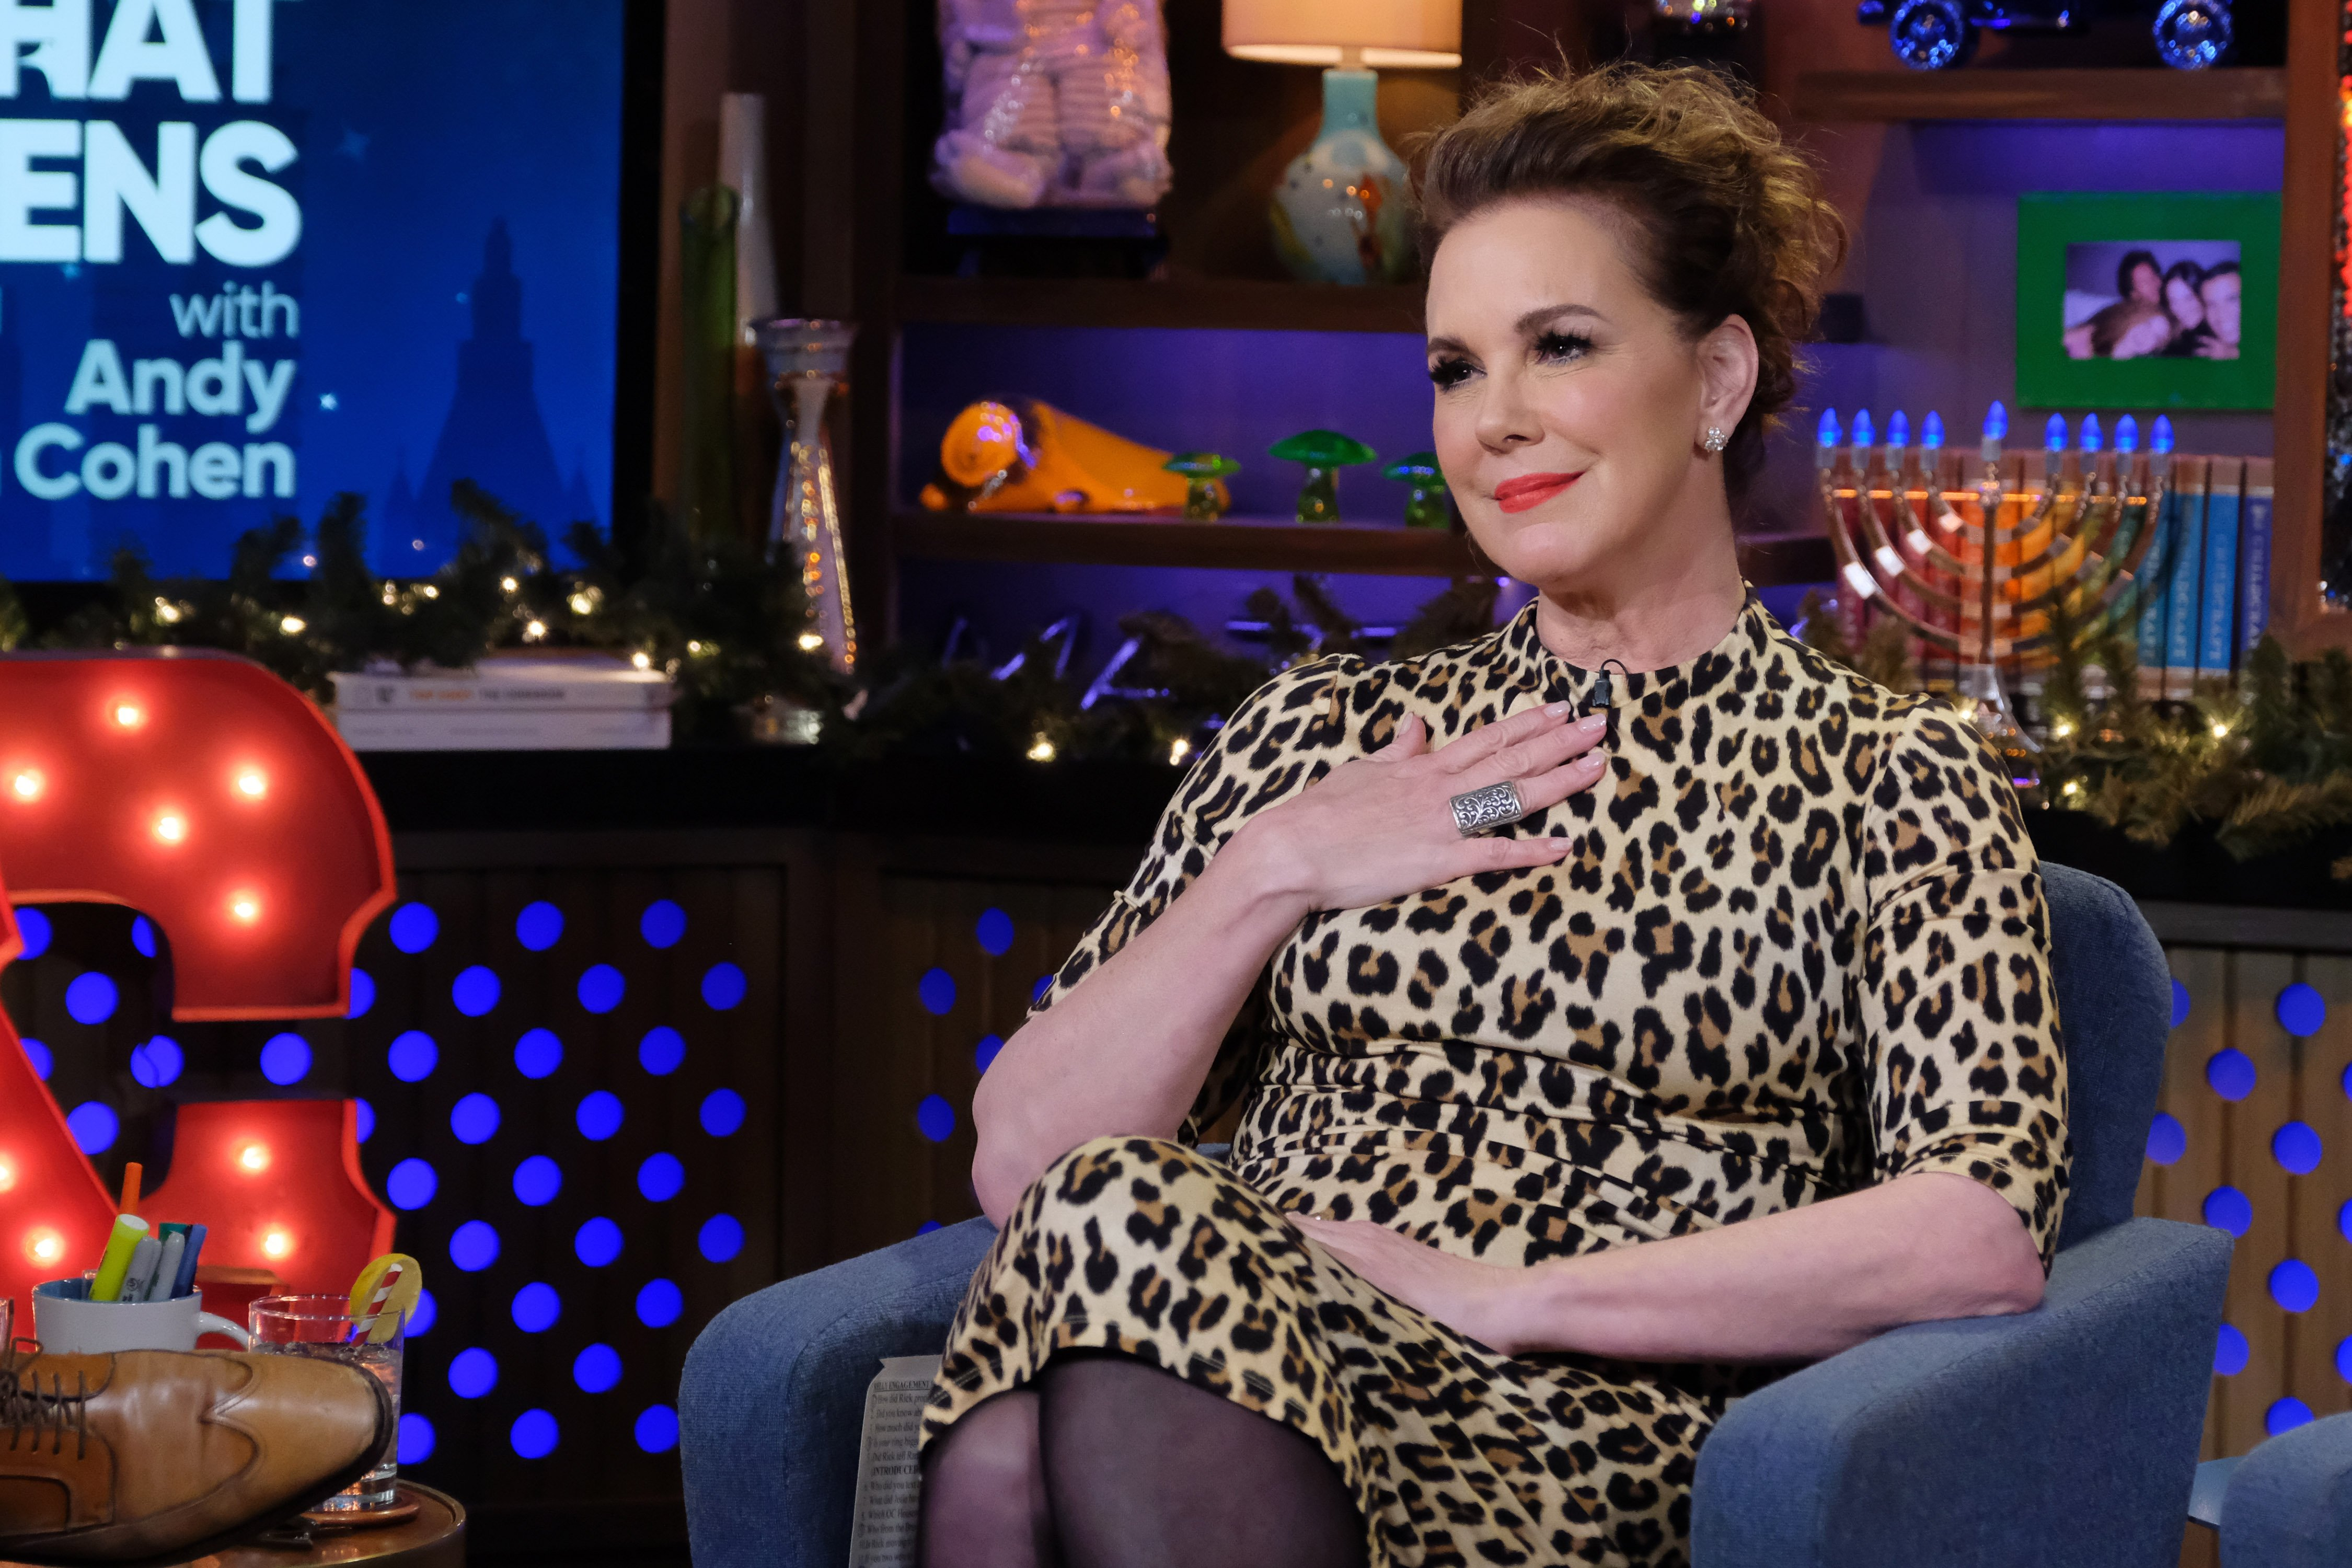 Elizabeth Perkins in Episode 16196 of 'Watch What Happens Live with Andy Cohen' | Photo: Getty Images